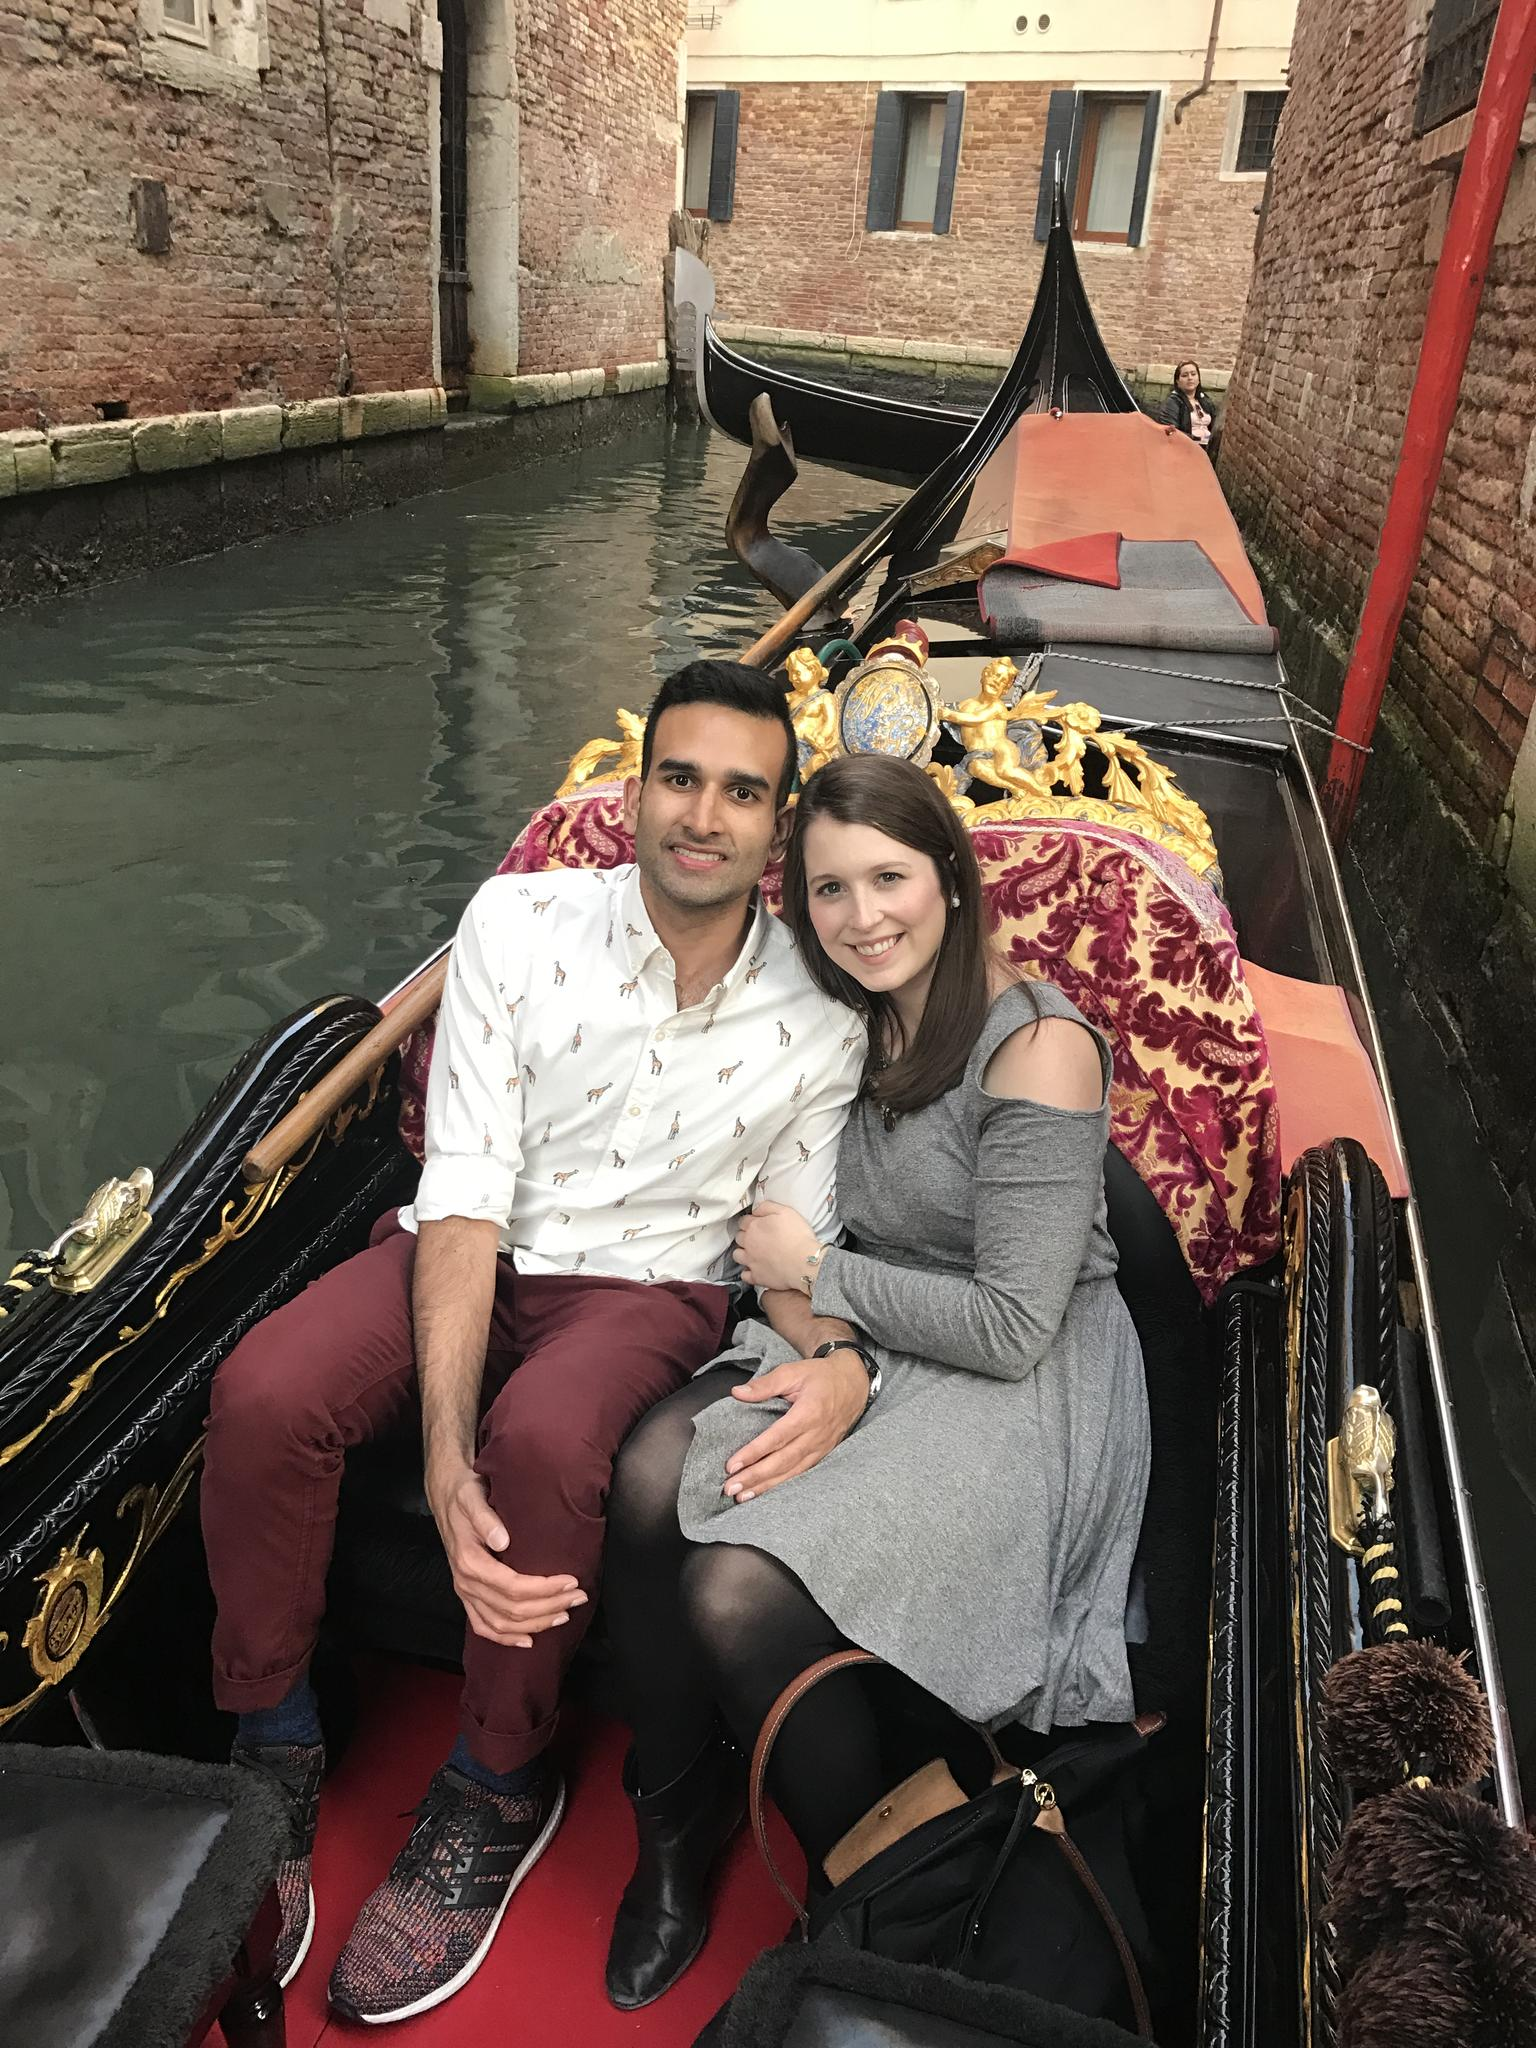 No trip to Venice is complete without a gondola ride through the romantic maze of canals :)